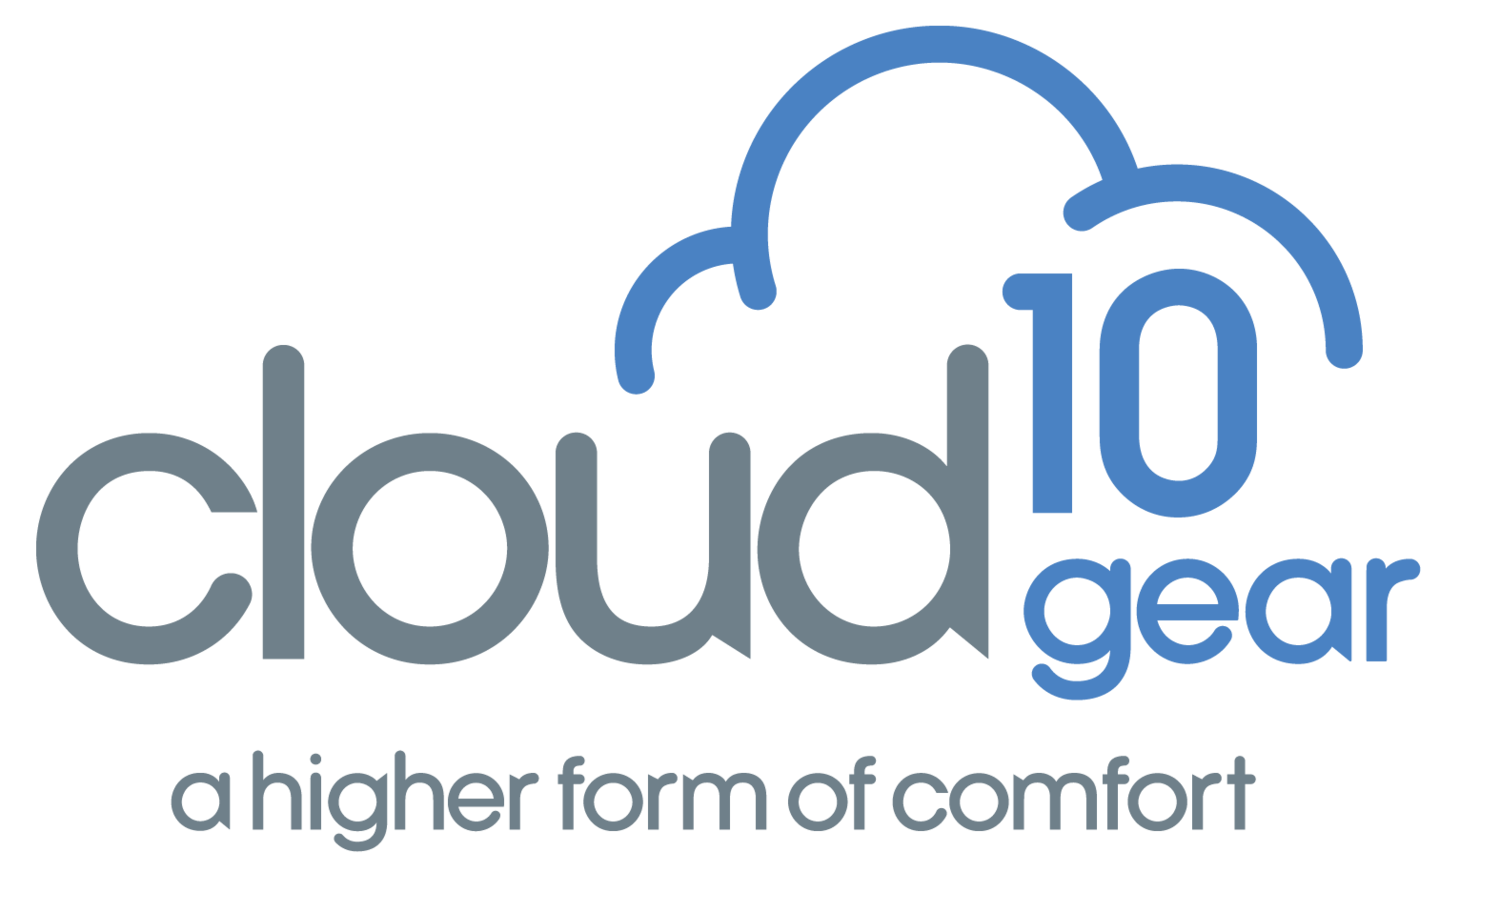 Cloud10gear